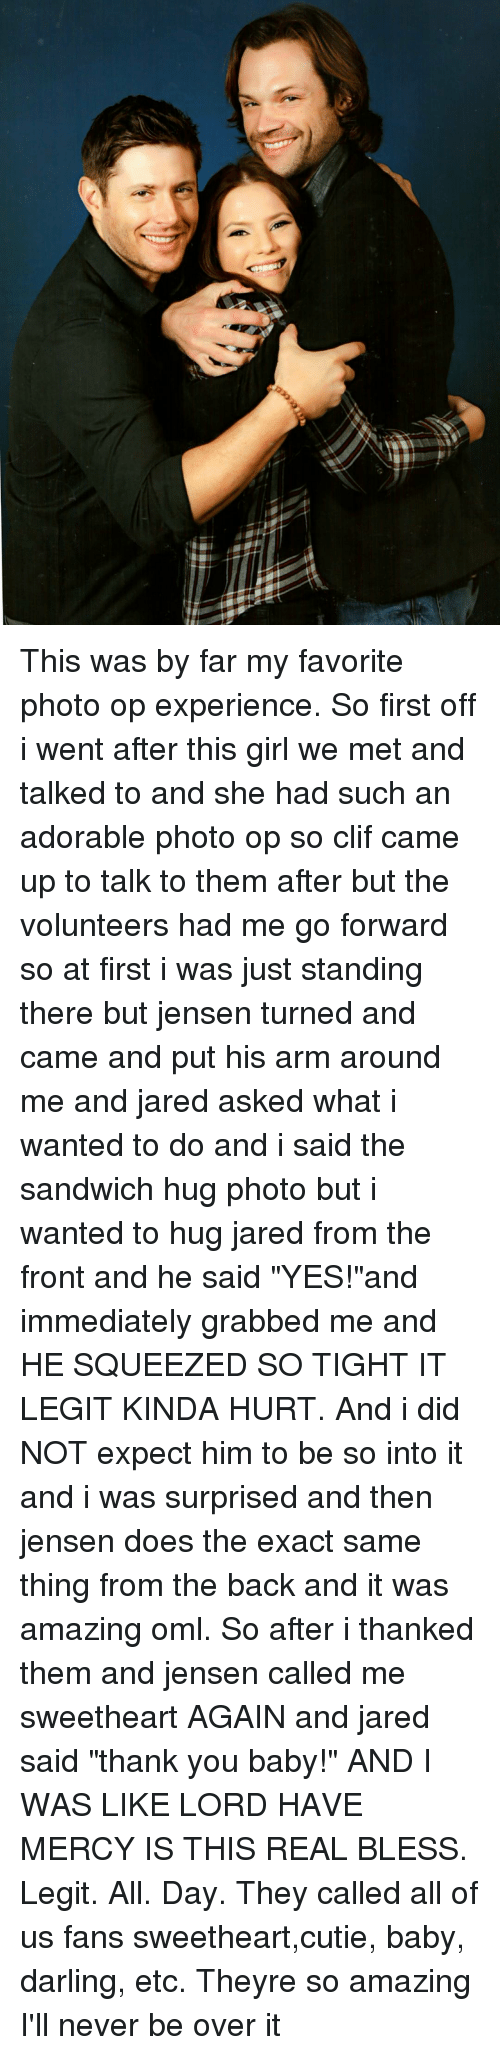 """squeezes: This was by far my favorite photo op experience. So first off i went after this girl we met and talked to and she had such an adorable photo op so clif came up to talk to them after but the volunteers had me go forward so at first i was just standing there but jensen turned and came and put his arm around me and jared asked what i wanted to do and i said the sandwich hug photo but i wanted to hug jared from the front and he said """"YES!""""and immediately grabbed me and HE SQUEEZED SO TIGHT IT LEGIT KINDA HURT. And i did NOT expect him to be so into it and i was surprised and then jensen does the exact same thing from the back and it was amazing oml. So after i thanked them and jensen called me sweetheart AGAIN and jared said """"thank you baby!"""" AND I WAS LIKE LORD HAVE MERCY IS THIS REAL BLESS. Legit. All. Day. They called all of us fans sweetheart,cutie, baby, darling, etc. Theyre so amazing I'll never be over it"""